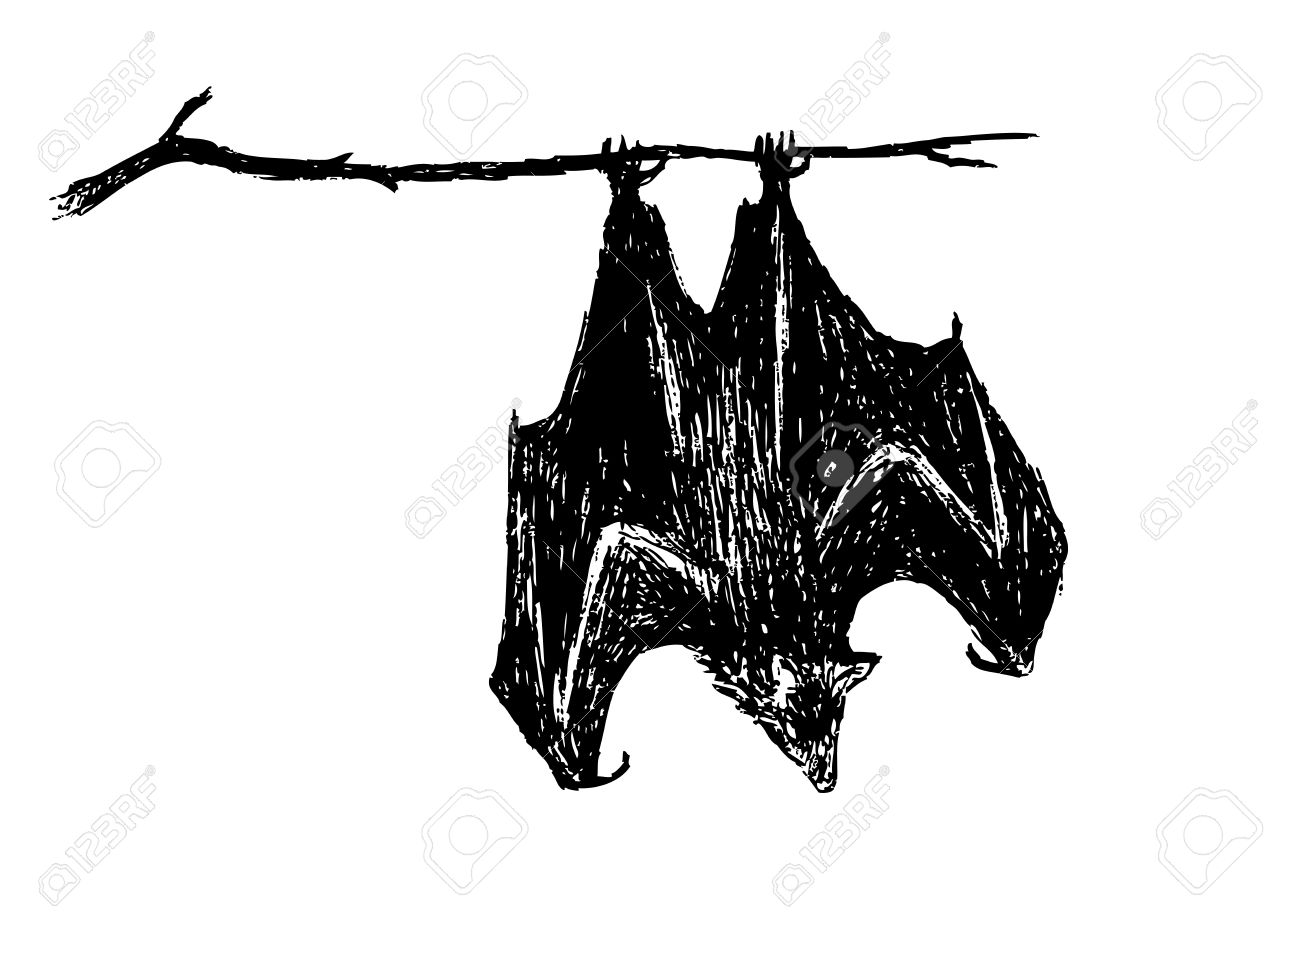 Hand drawing of upside down bat by pencil use for halloween